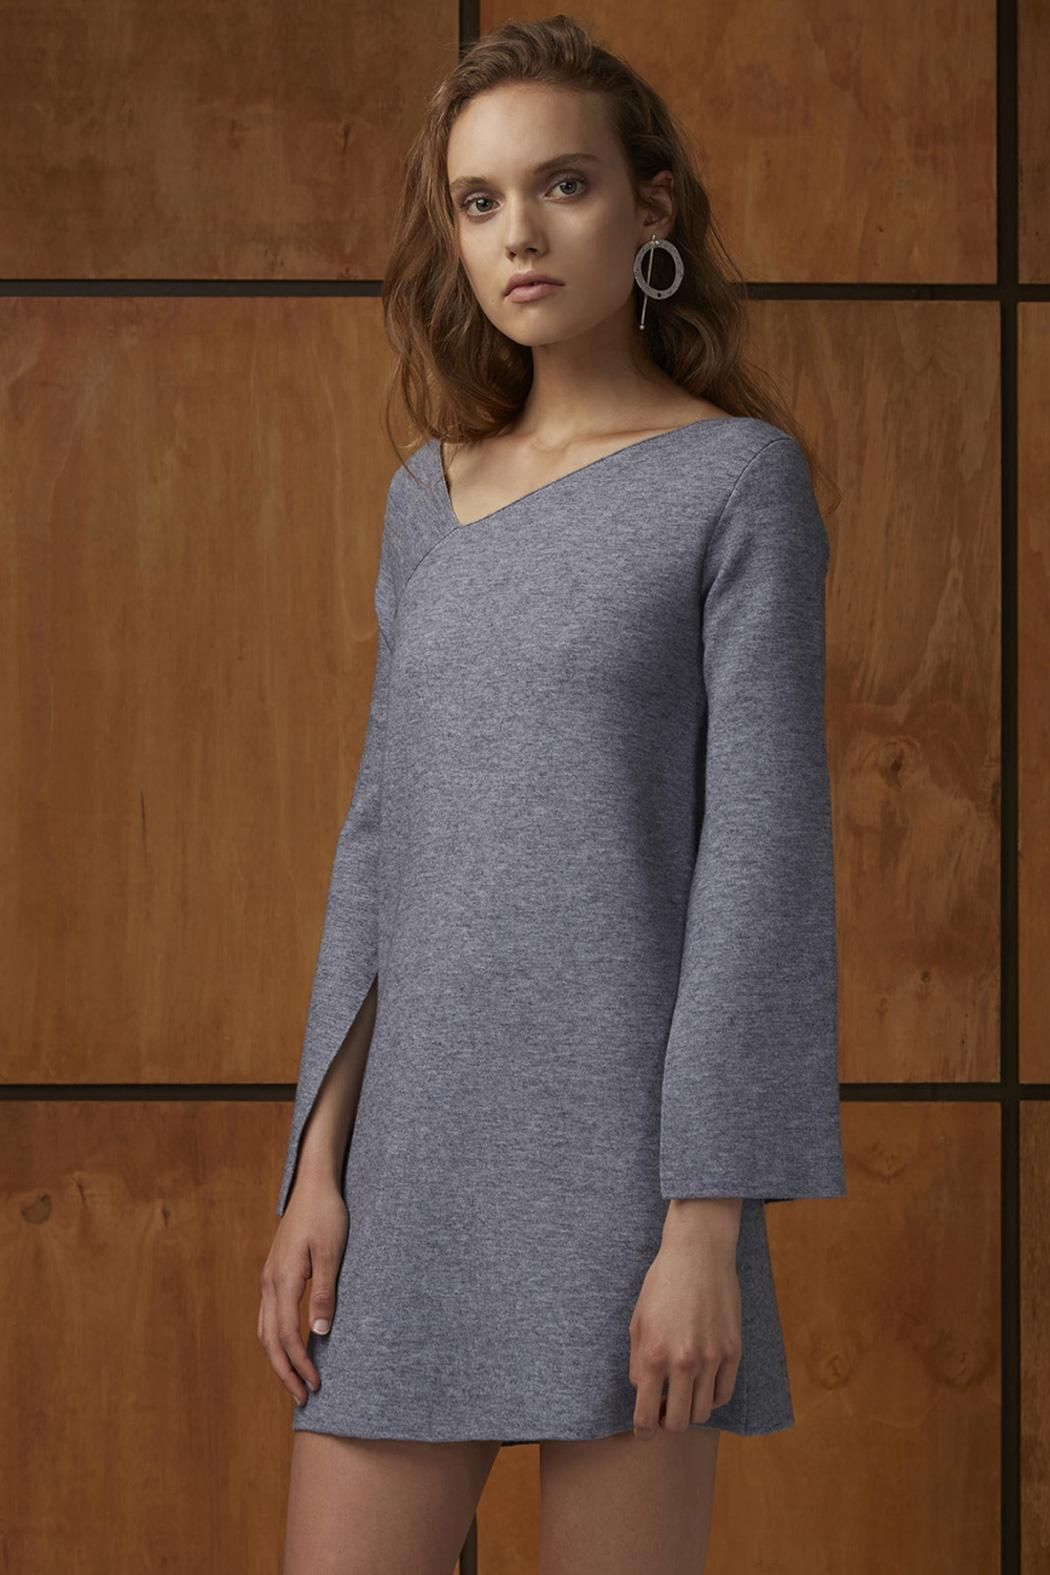 The Break Free Knit Dress is a relaxed fit mini dress with a wide v-neckline, and long flared sleeves with splits in the underarms in a mid-weight knit fabric.   Break Free Knit Dress by C/MEO COLLECTIVE. Clothing - Dresses - Mini Clothing - Dresses - Long Sleeve Sydney, New South Wales, Australia